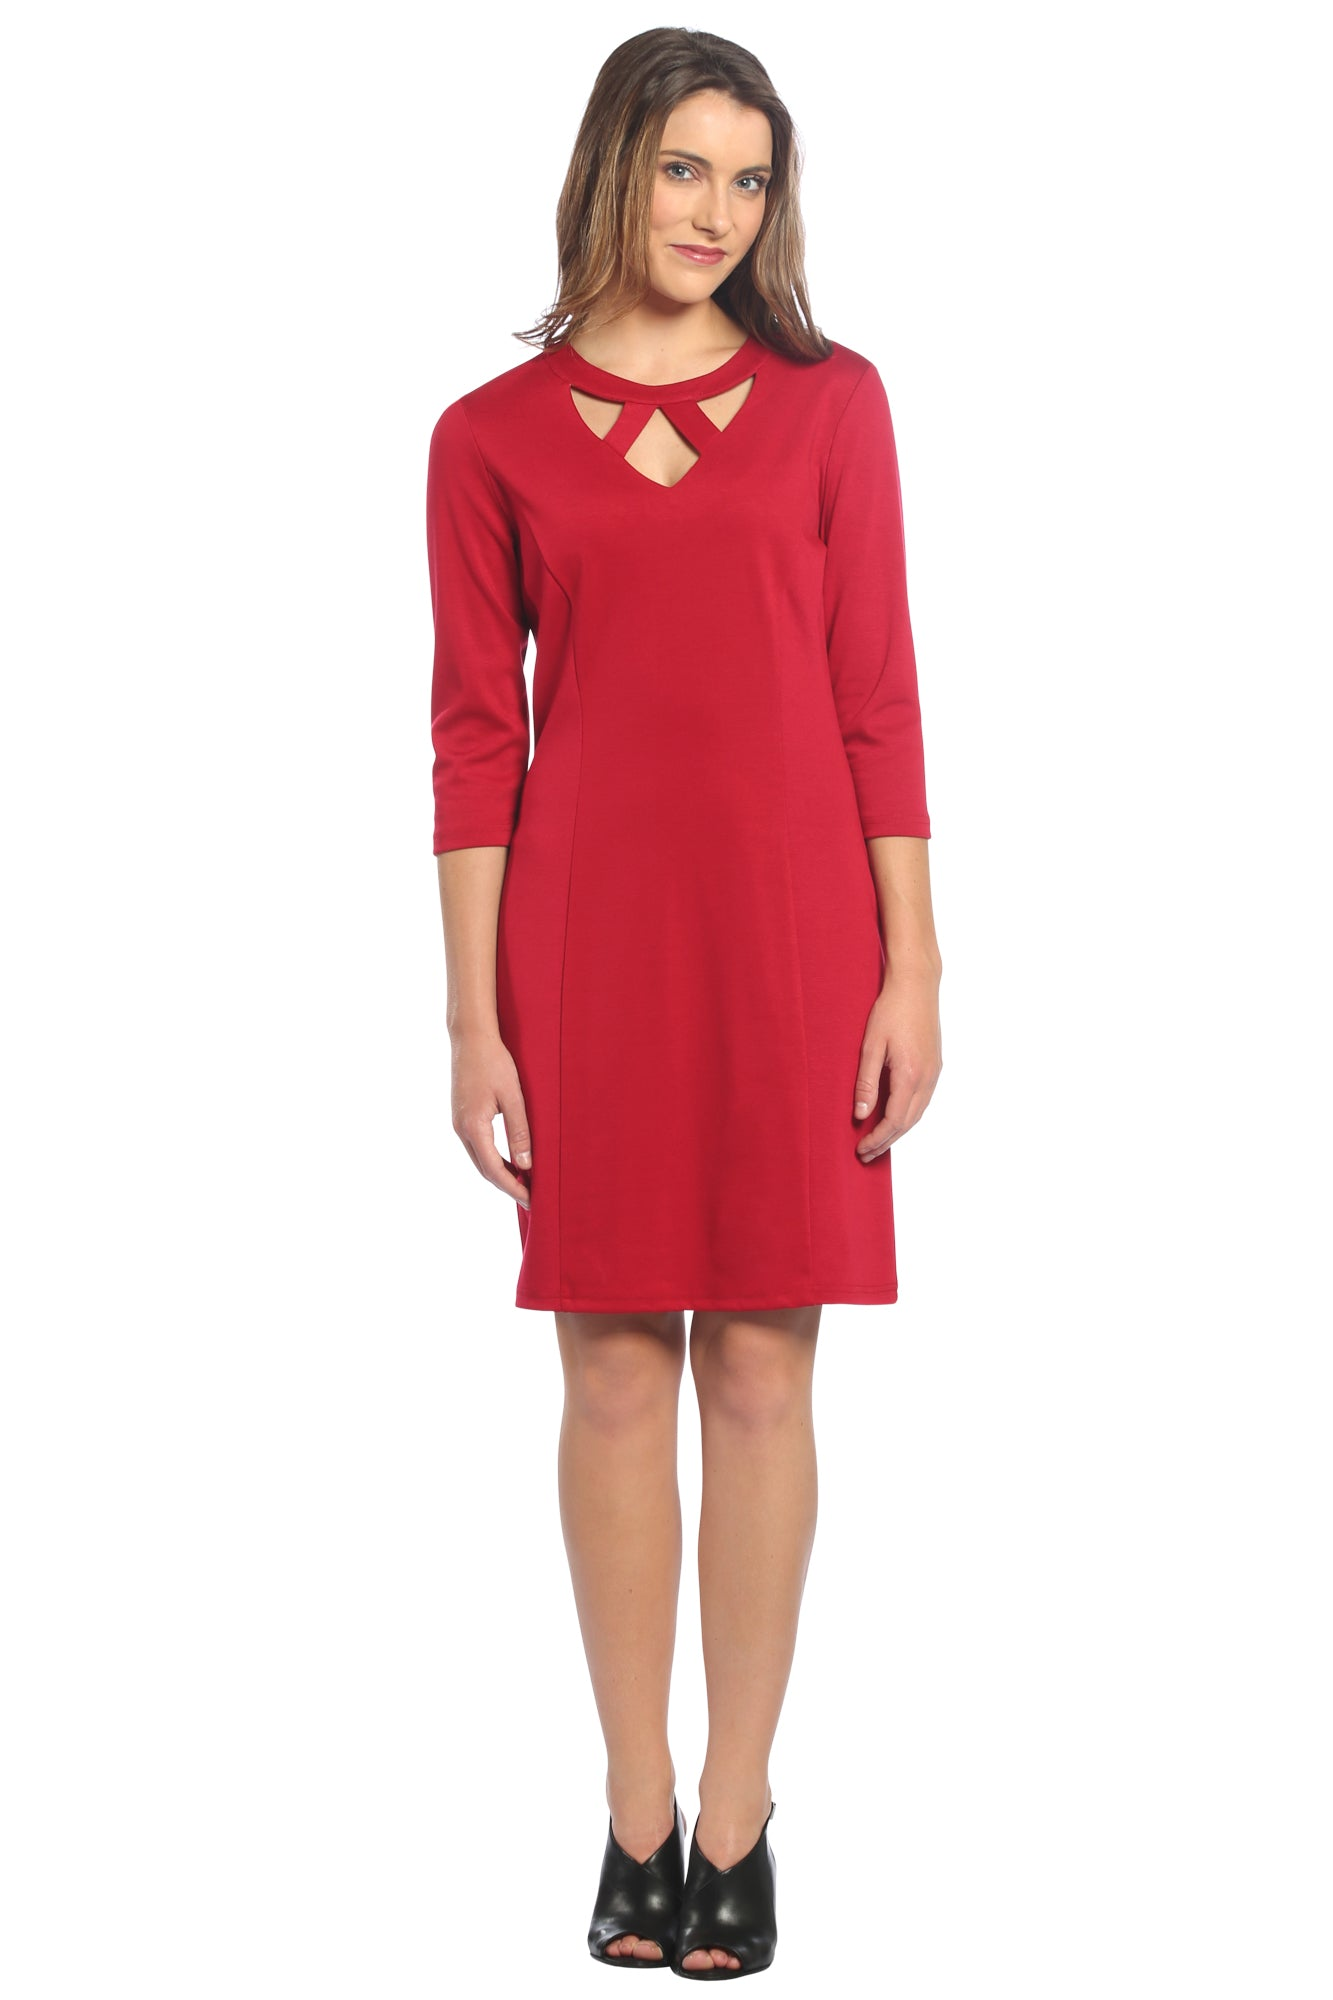 V-Neck Cut Out Dress in Red